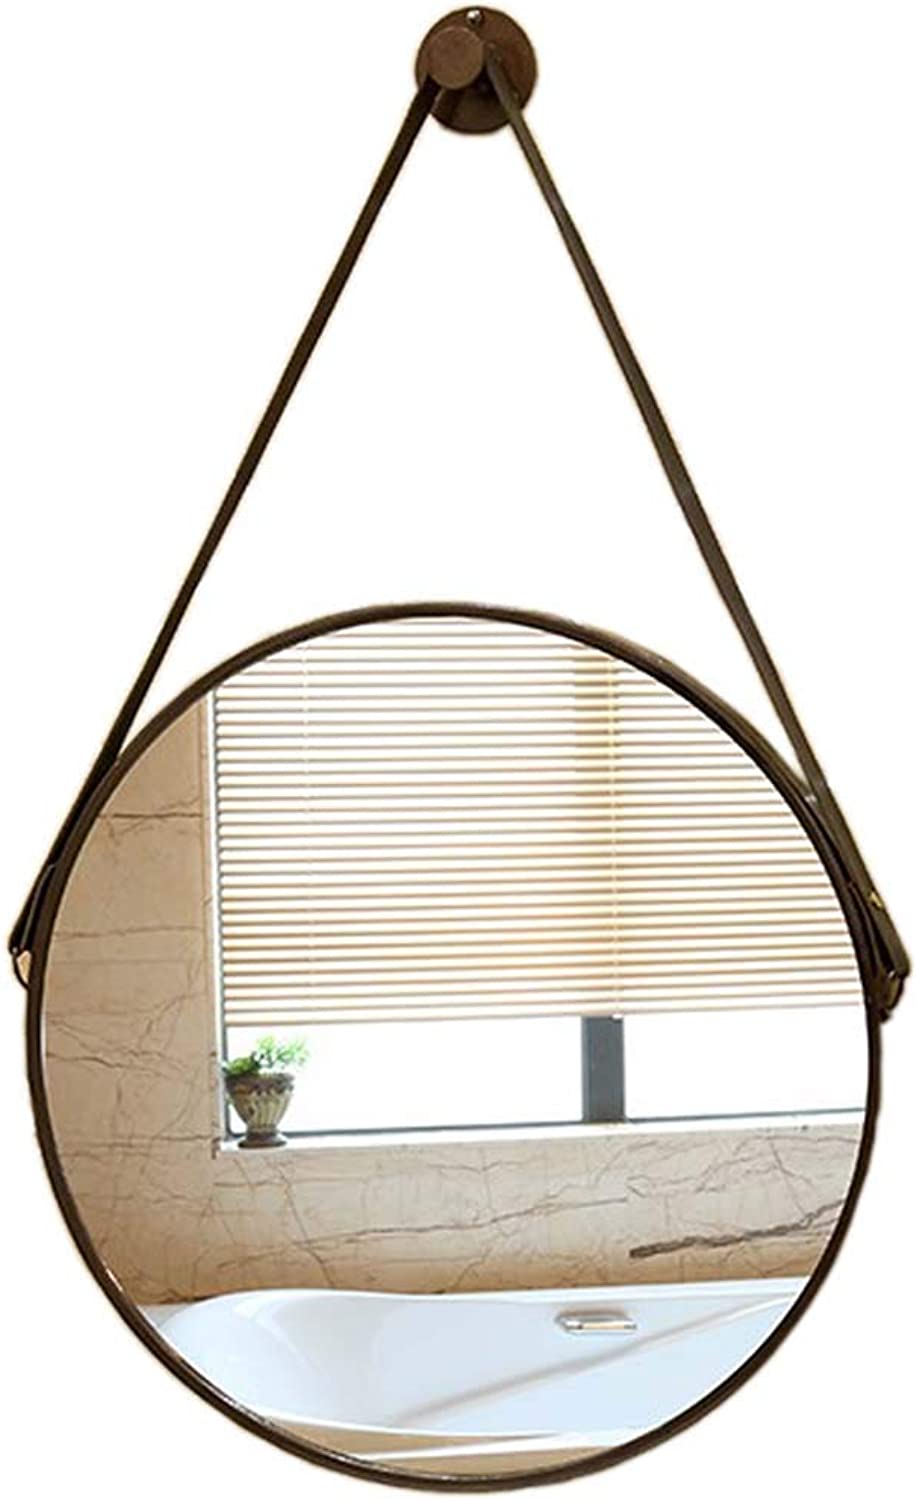 Vanity Mirror - Wall Round Decorative Hanging Mirror Bronze Metal Frame with Leather Sling Simple Yet Elegant Shaving Mirrors for Entryways Washrooms Living Rooms and More(19.7Inch)